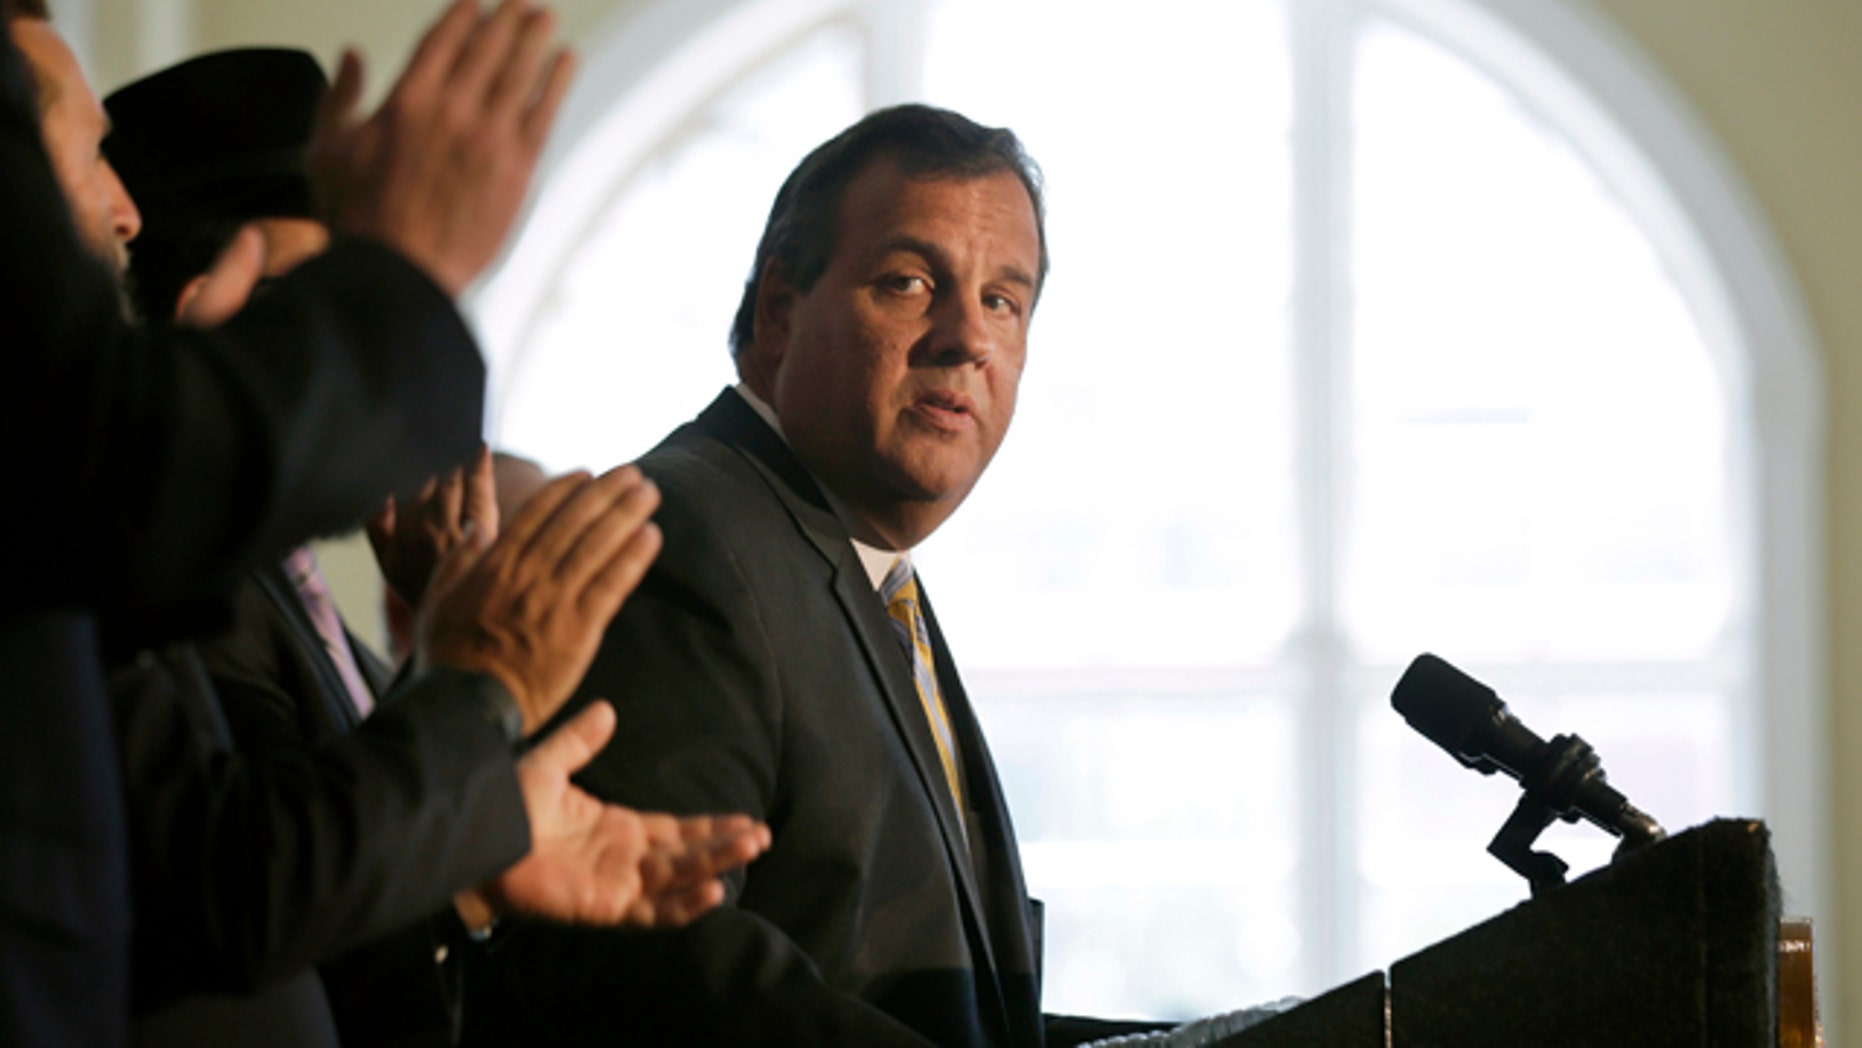 Aug. 25, 2015: New Jersey Gov. Chris Christie listens to applause after he called on Democratic Sen. Cory Booker and the state's congressional delegation to join Sen. Bob Menendez in opposing the Iran nuclear deal at Rutgers University in New Brunswick, N.J. (AP Photo/Mel Evans)